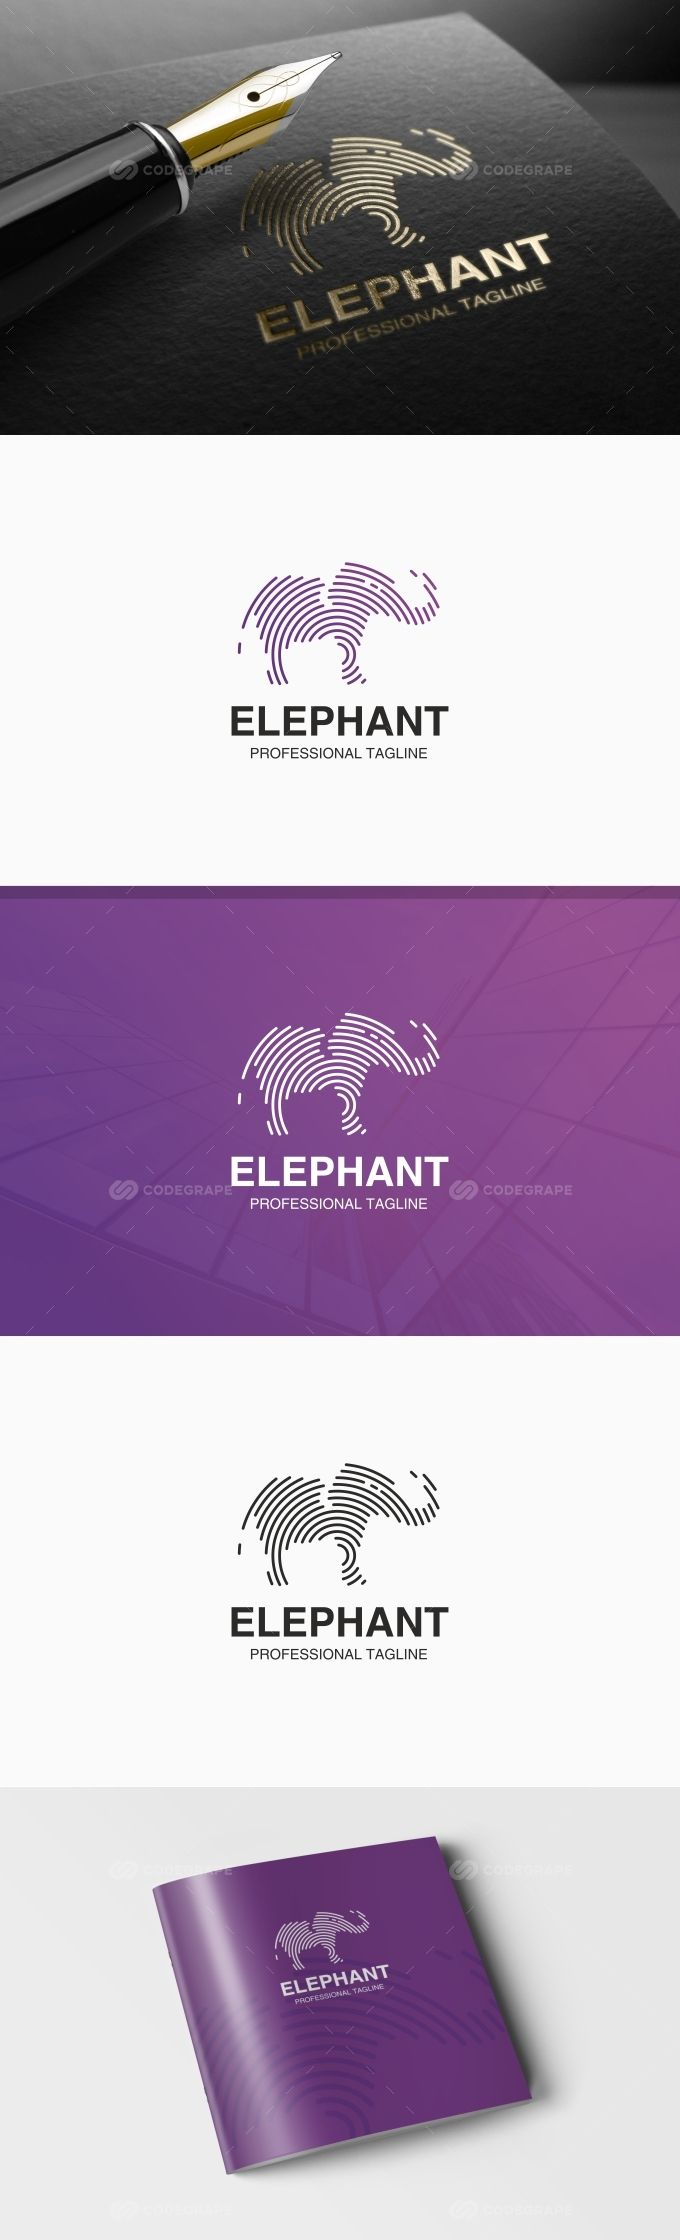 Elephant Logo on @codegrape. More Info: https://www.codegrape.com/item/elephant-logo/19240